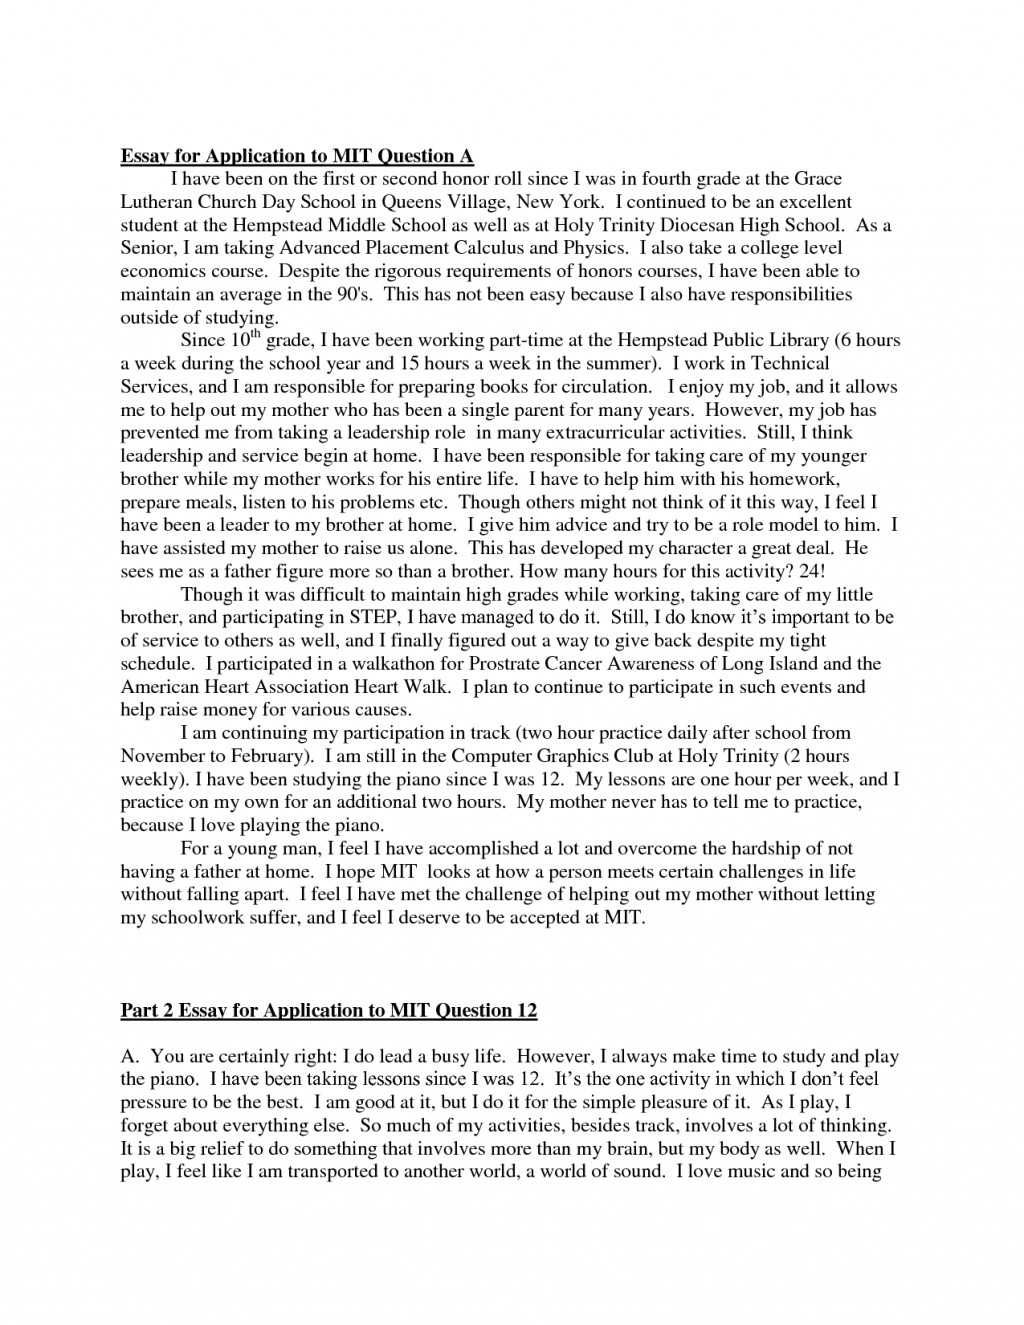 003 College Acceptance Essay Millicent Rogers Museum Related Keywords Long Tail Keywordsking Entrance Sample L Striking Application Template App Topics Samples Large